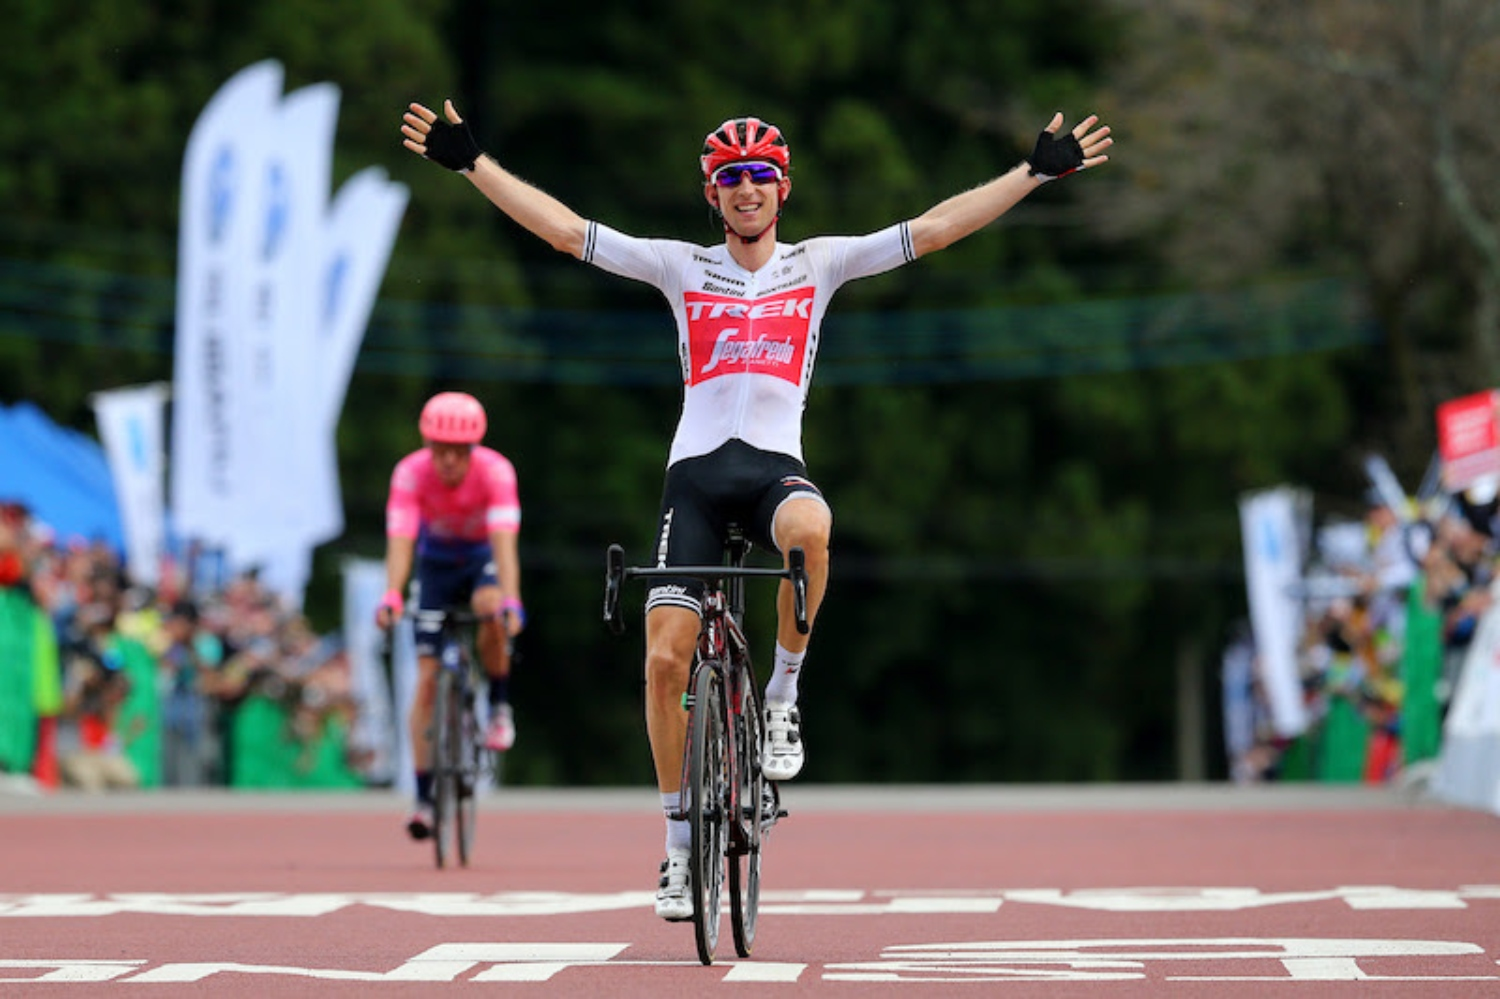 UTSUNOMIYA, JAPAN - OCTOBER 20: Arrival / Bauke Mollema of Netherlands and Team Trek-Segafredo / Celebration / Michael Woods of Canada and Team EF Education First / during the 28th Japan Cup 2019, Cycle Road Race a 144,2km race from Utsunomiya to Utsunomiya / @Japancup_ofc / on October 20, 2019 in Utsunomiya, Japan. (Photo by Kei Tsuji/Getty Images)